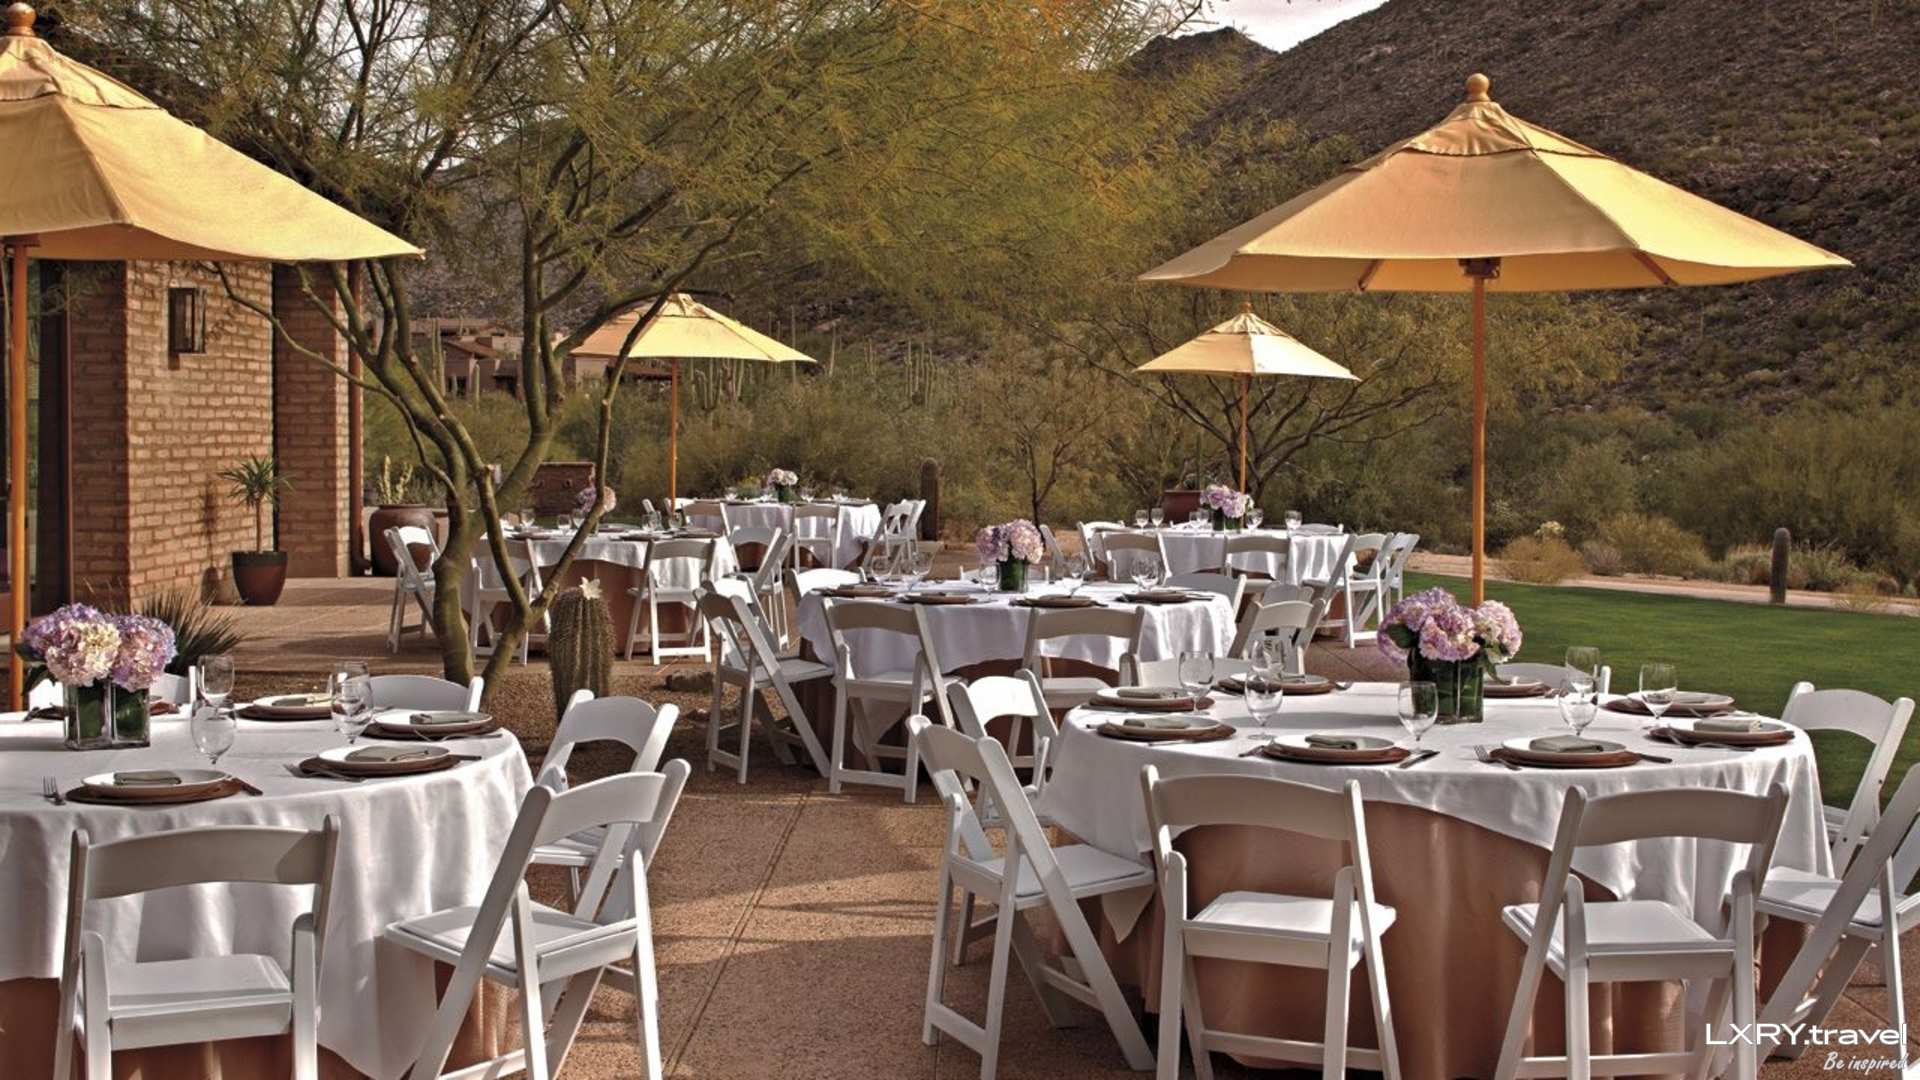 The Ritz-Carlton, Dove Mountain 51/56